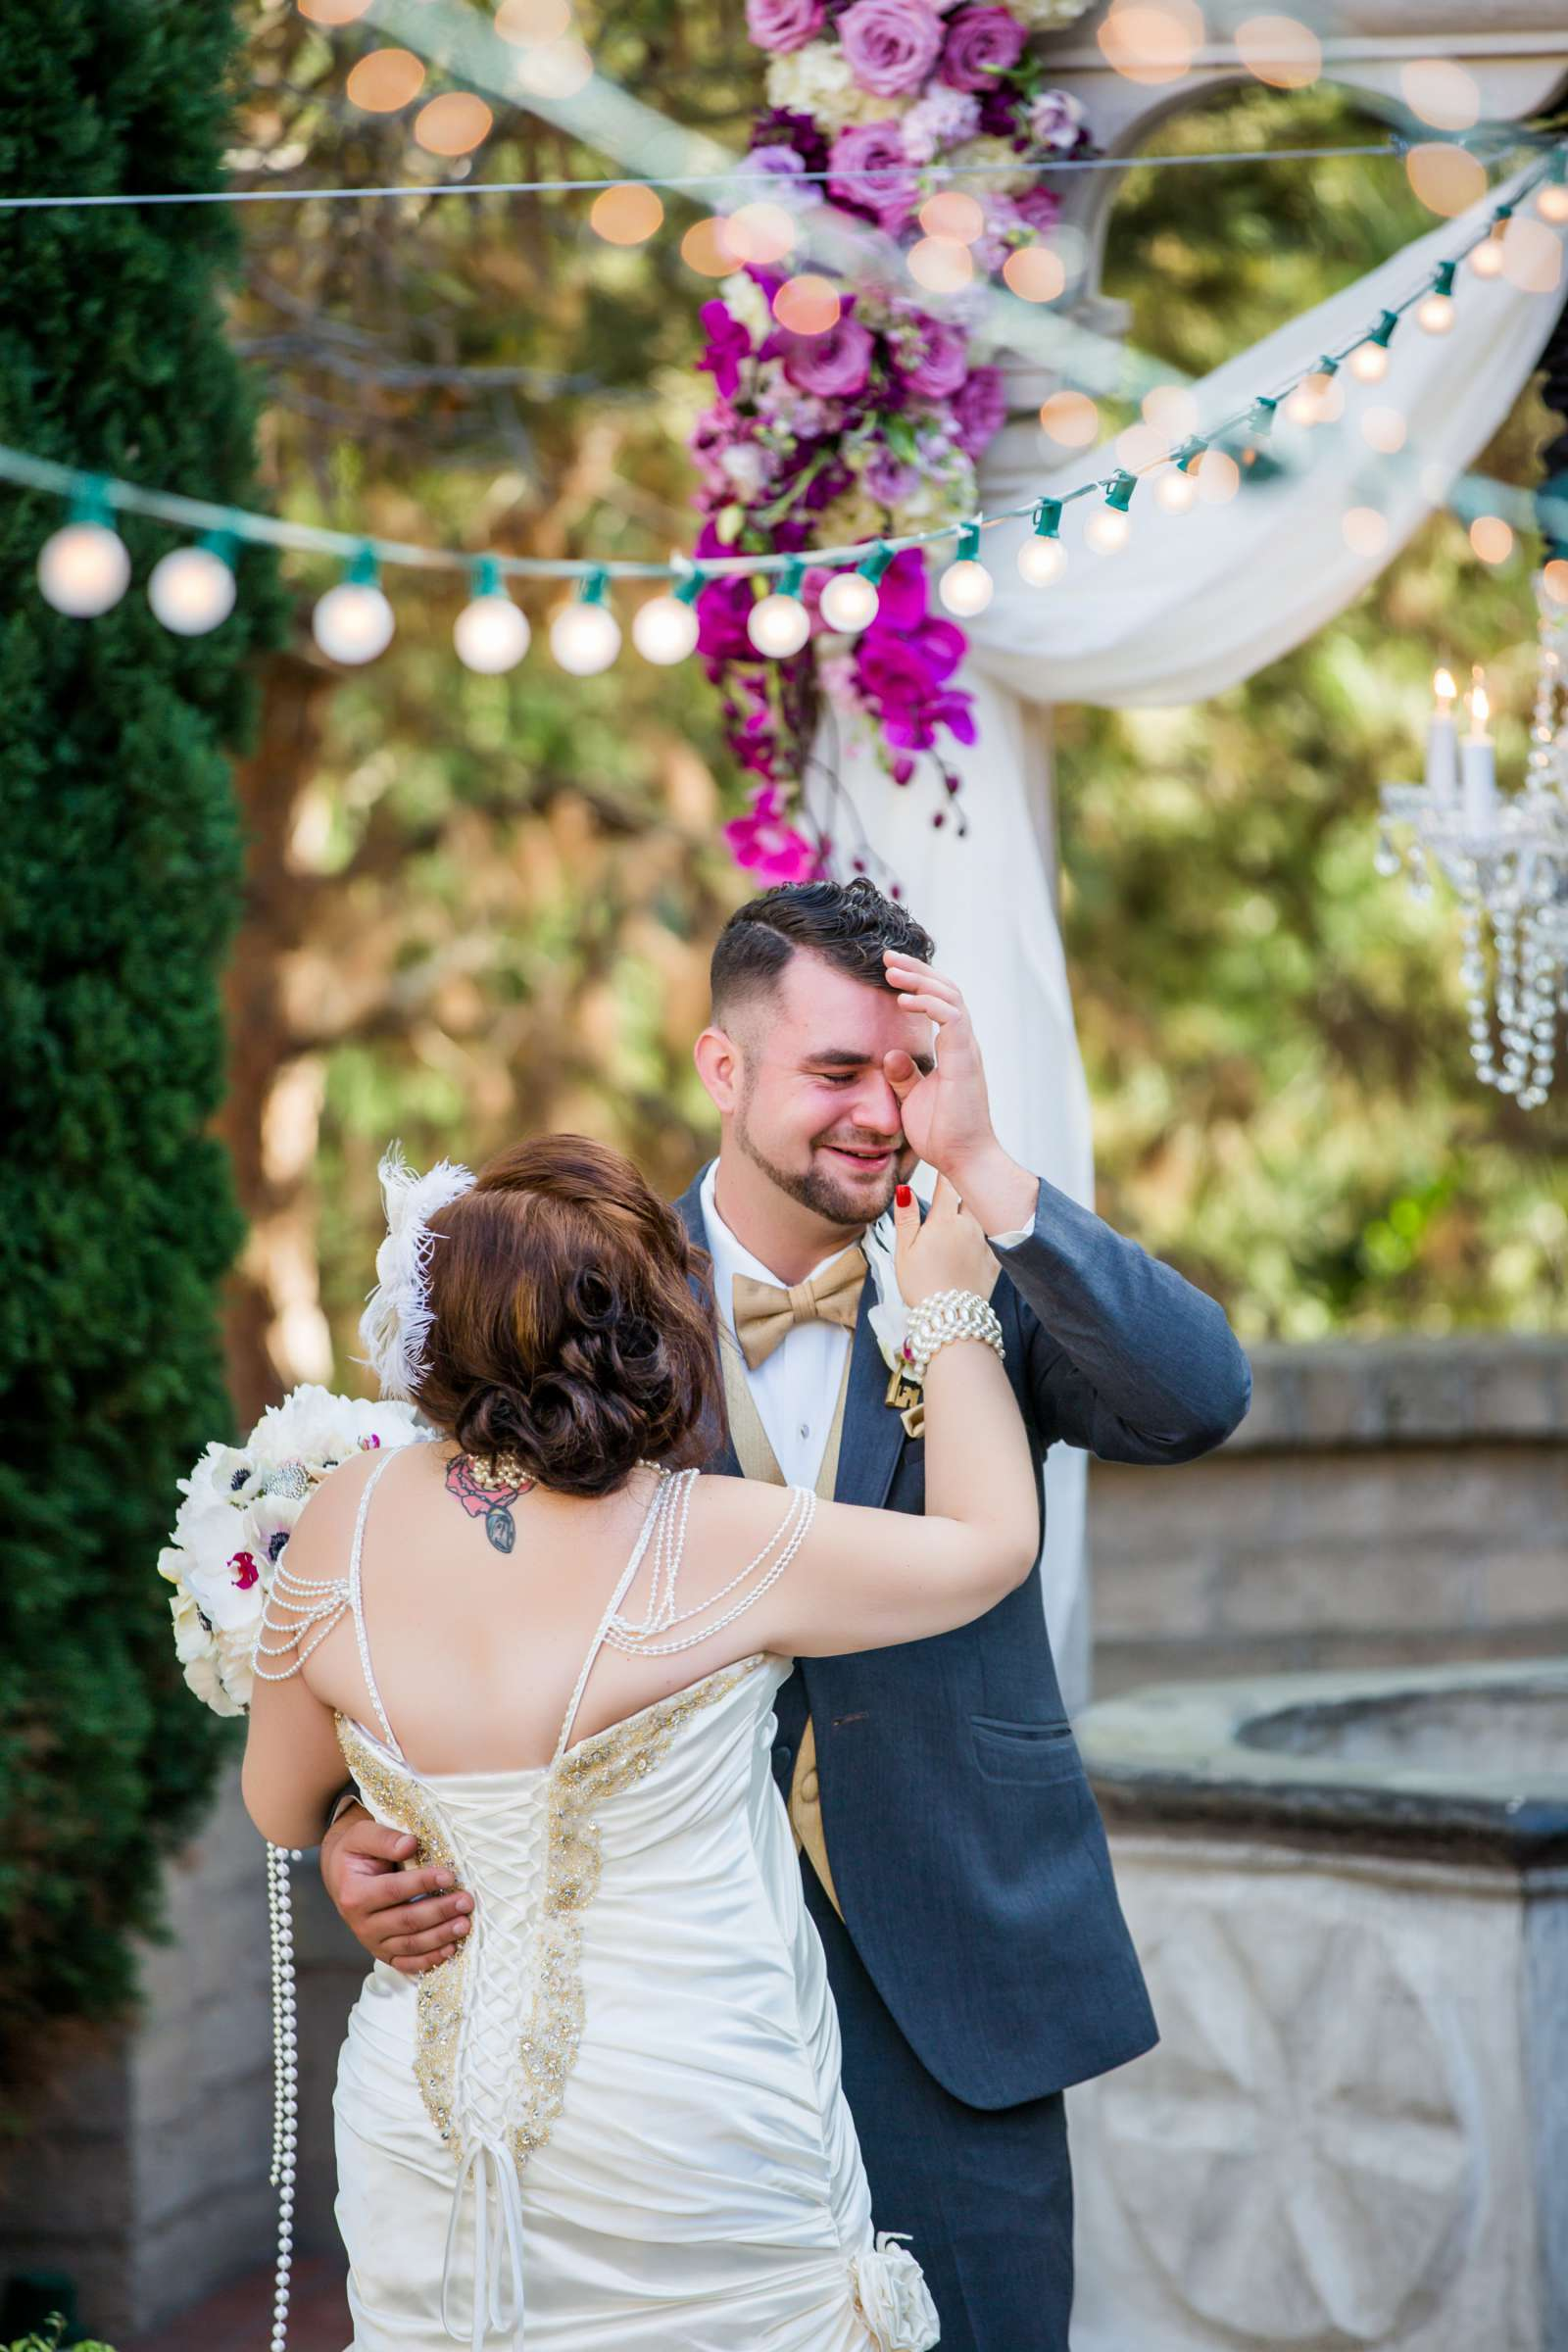 The Prado Wedding coordinated by Breezy Day Weddings, Aalis and Michael Wedding Photo #10 by True Photography